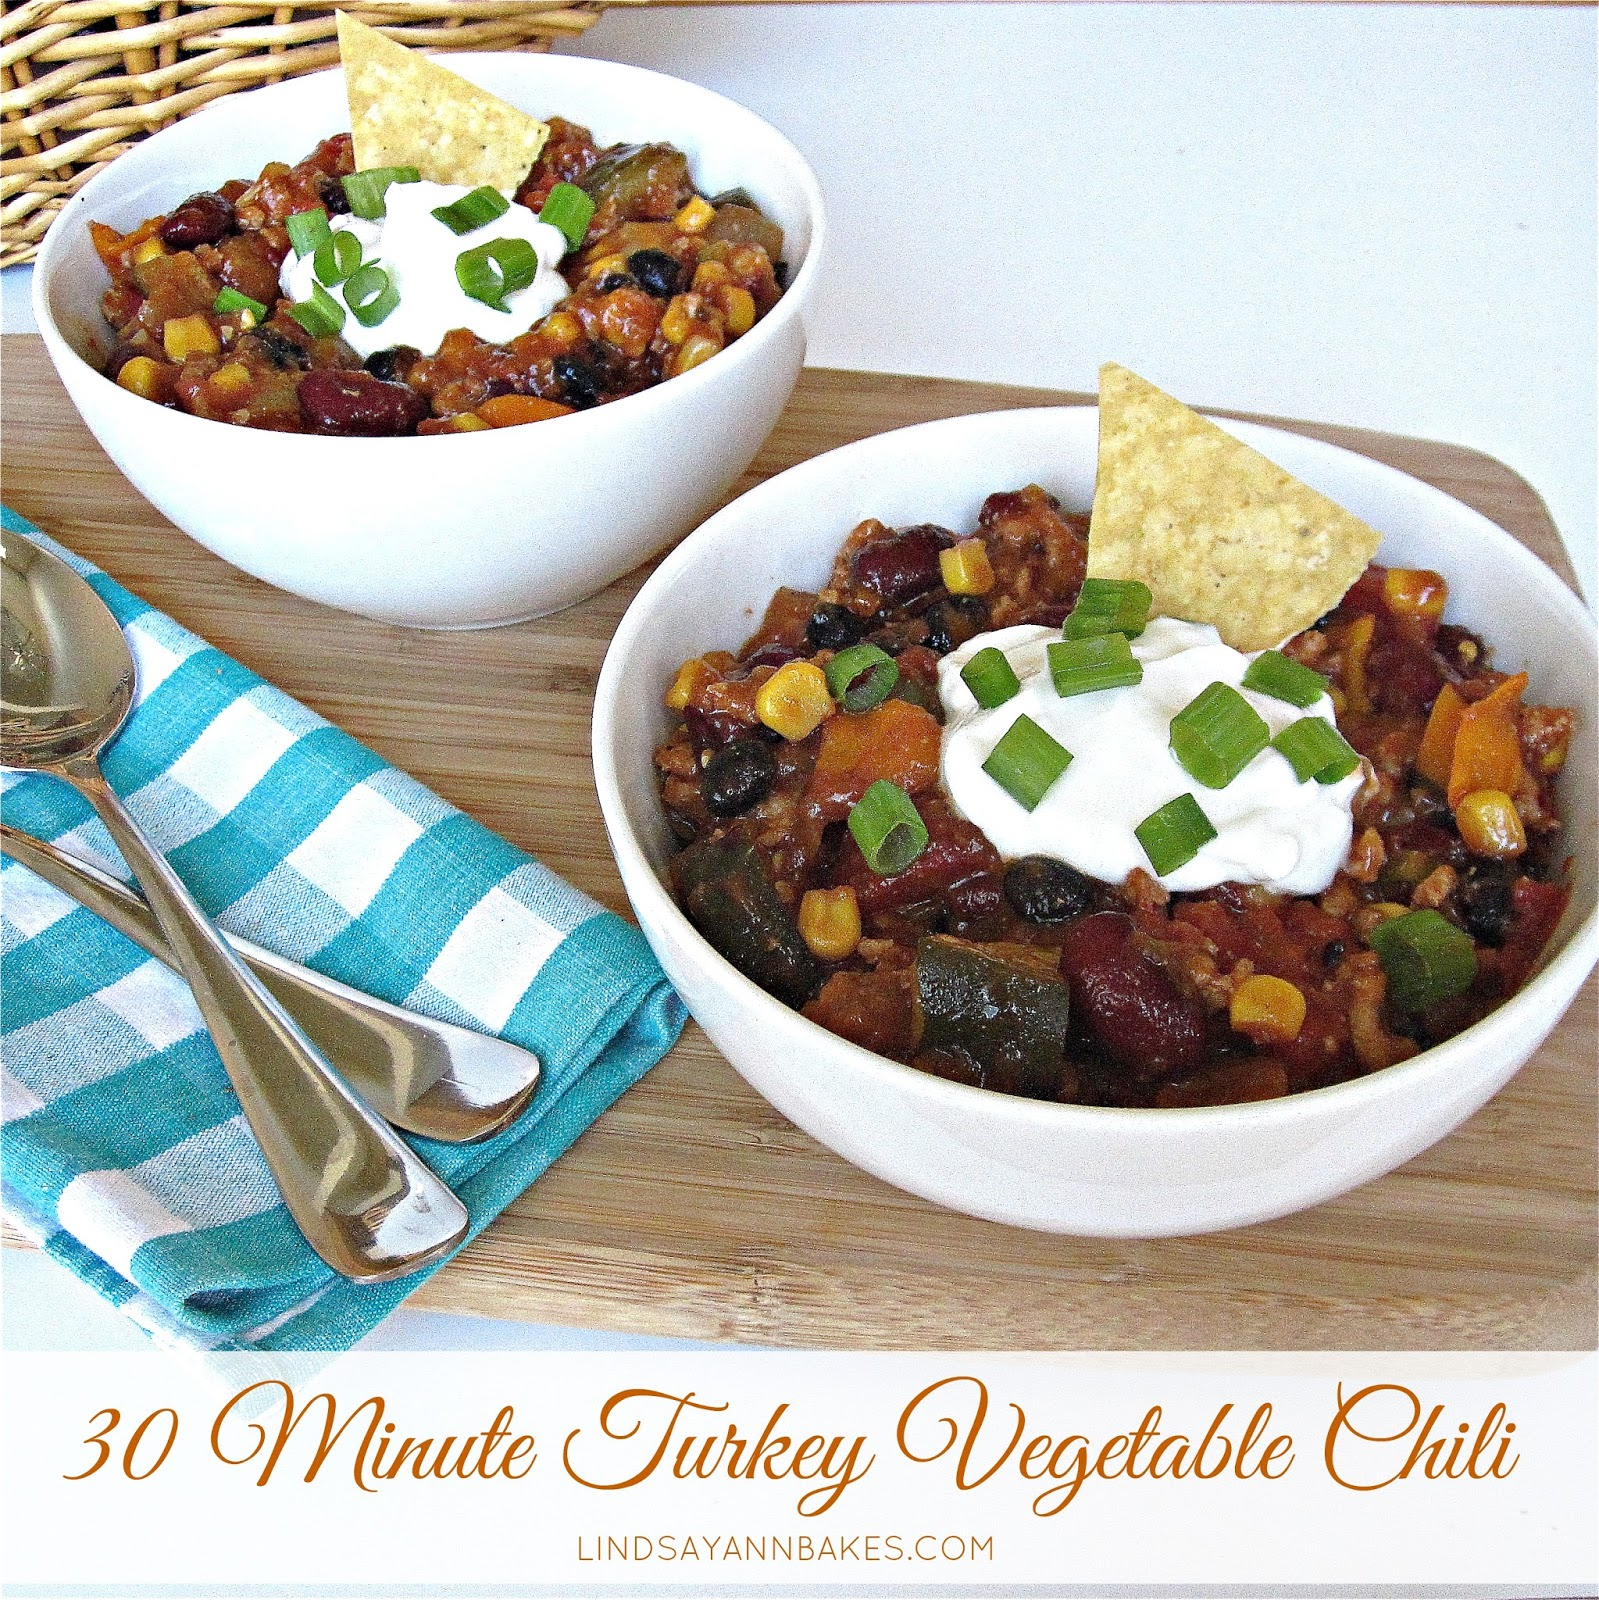 Quick And Easy Turkey Vegetable Chili The Lindsay Ann